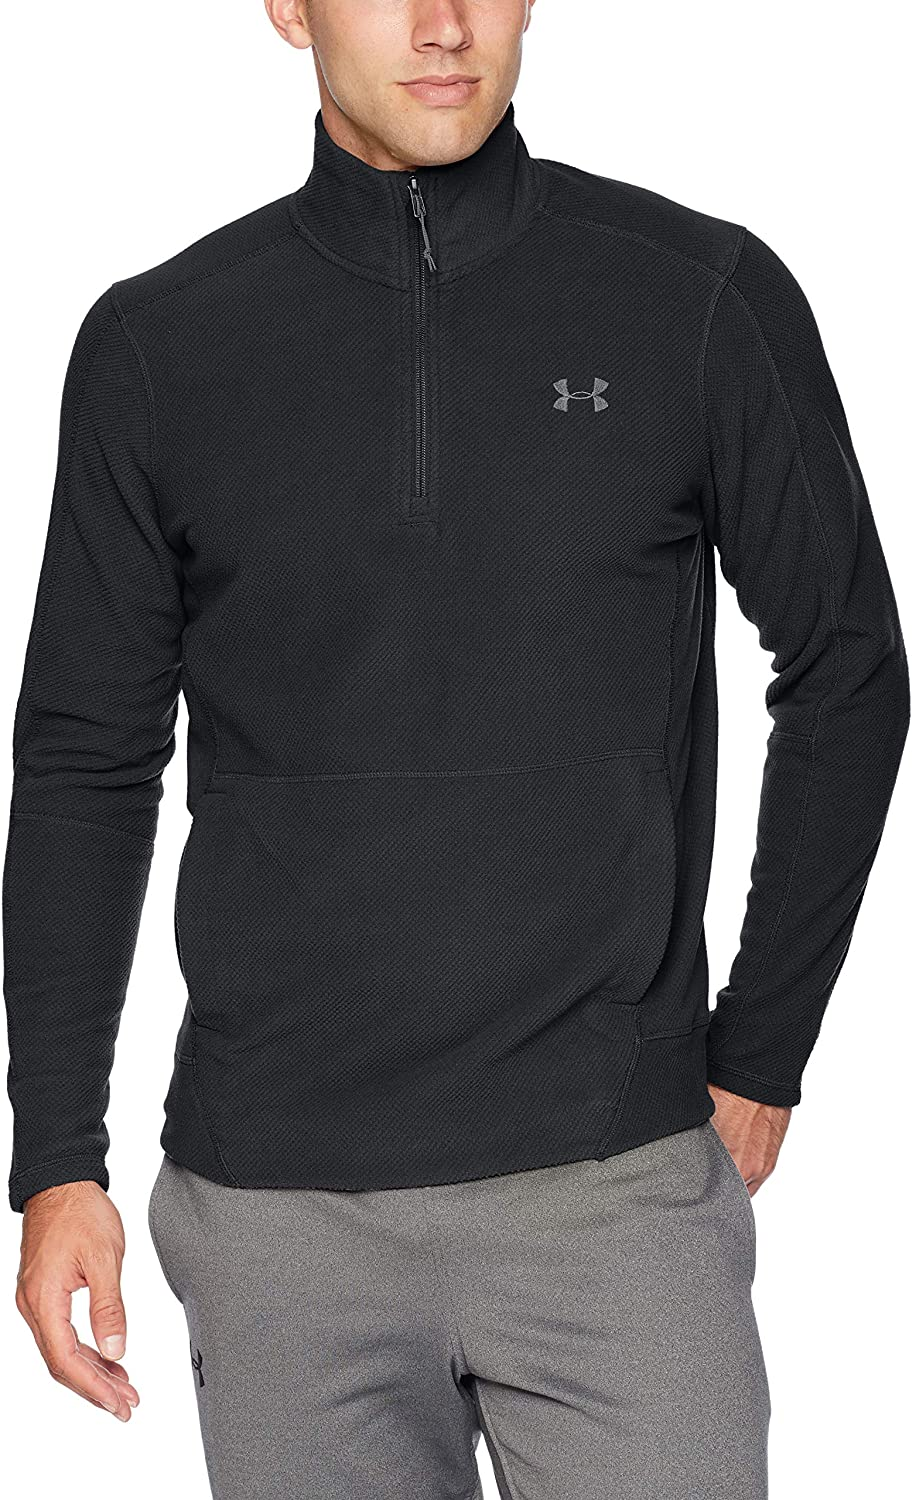 Under Armour Men's Zephyr Fleece Solid 1/4 Zip Sweat Shirt, Black (001)/Graphite, X-Large